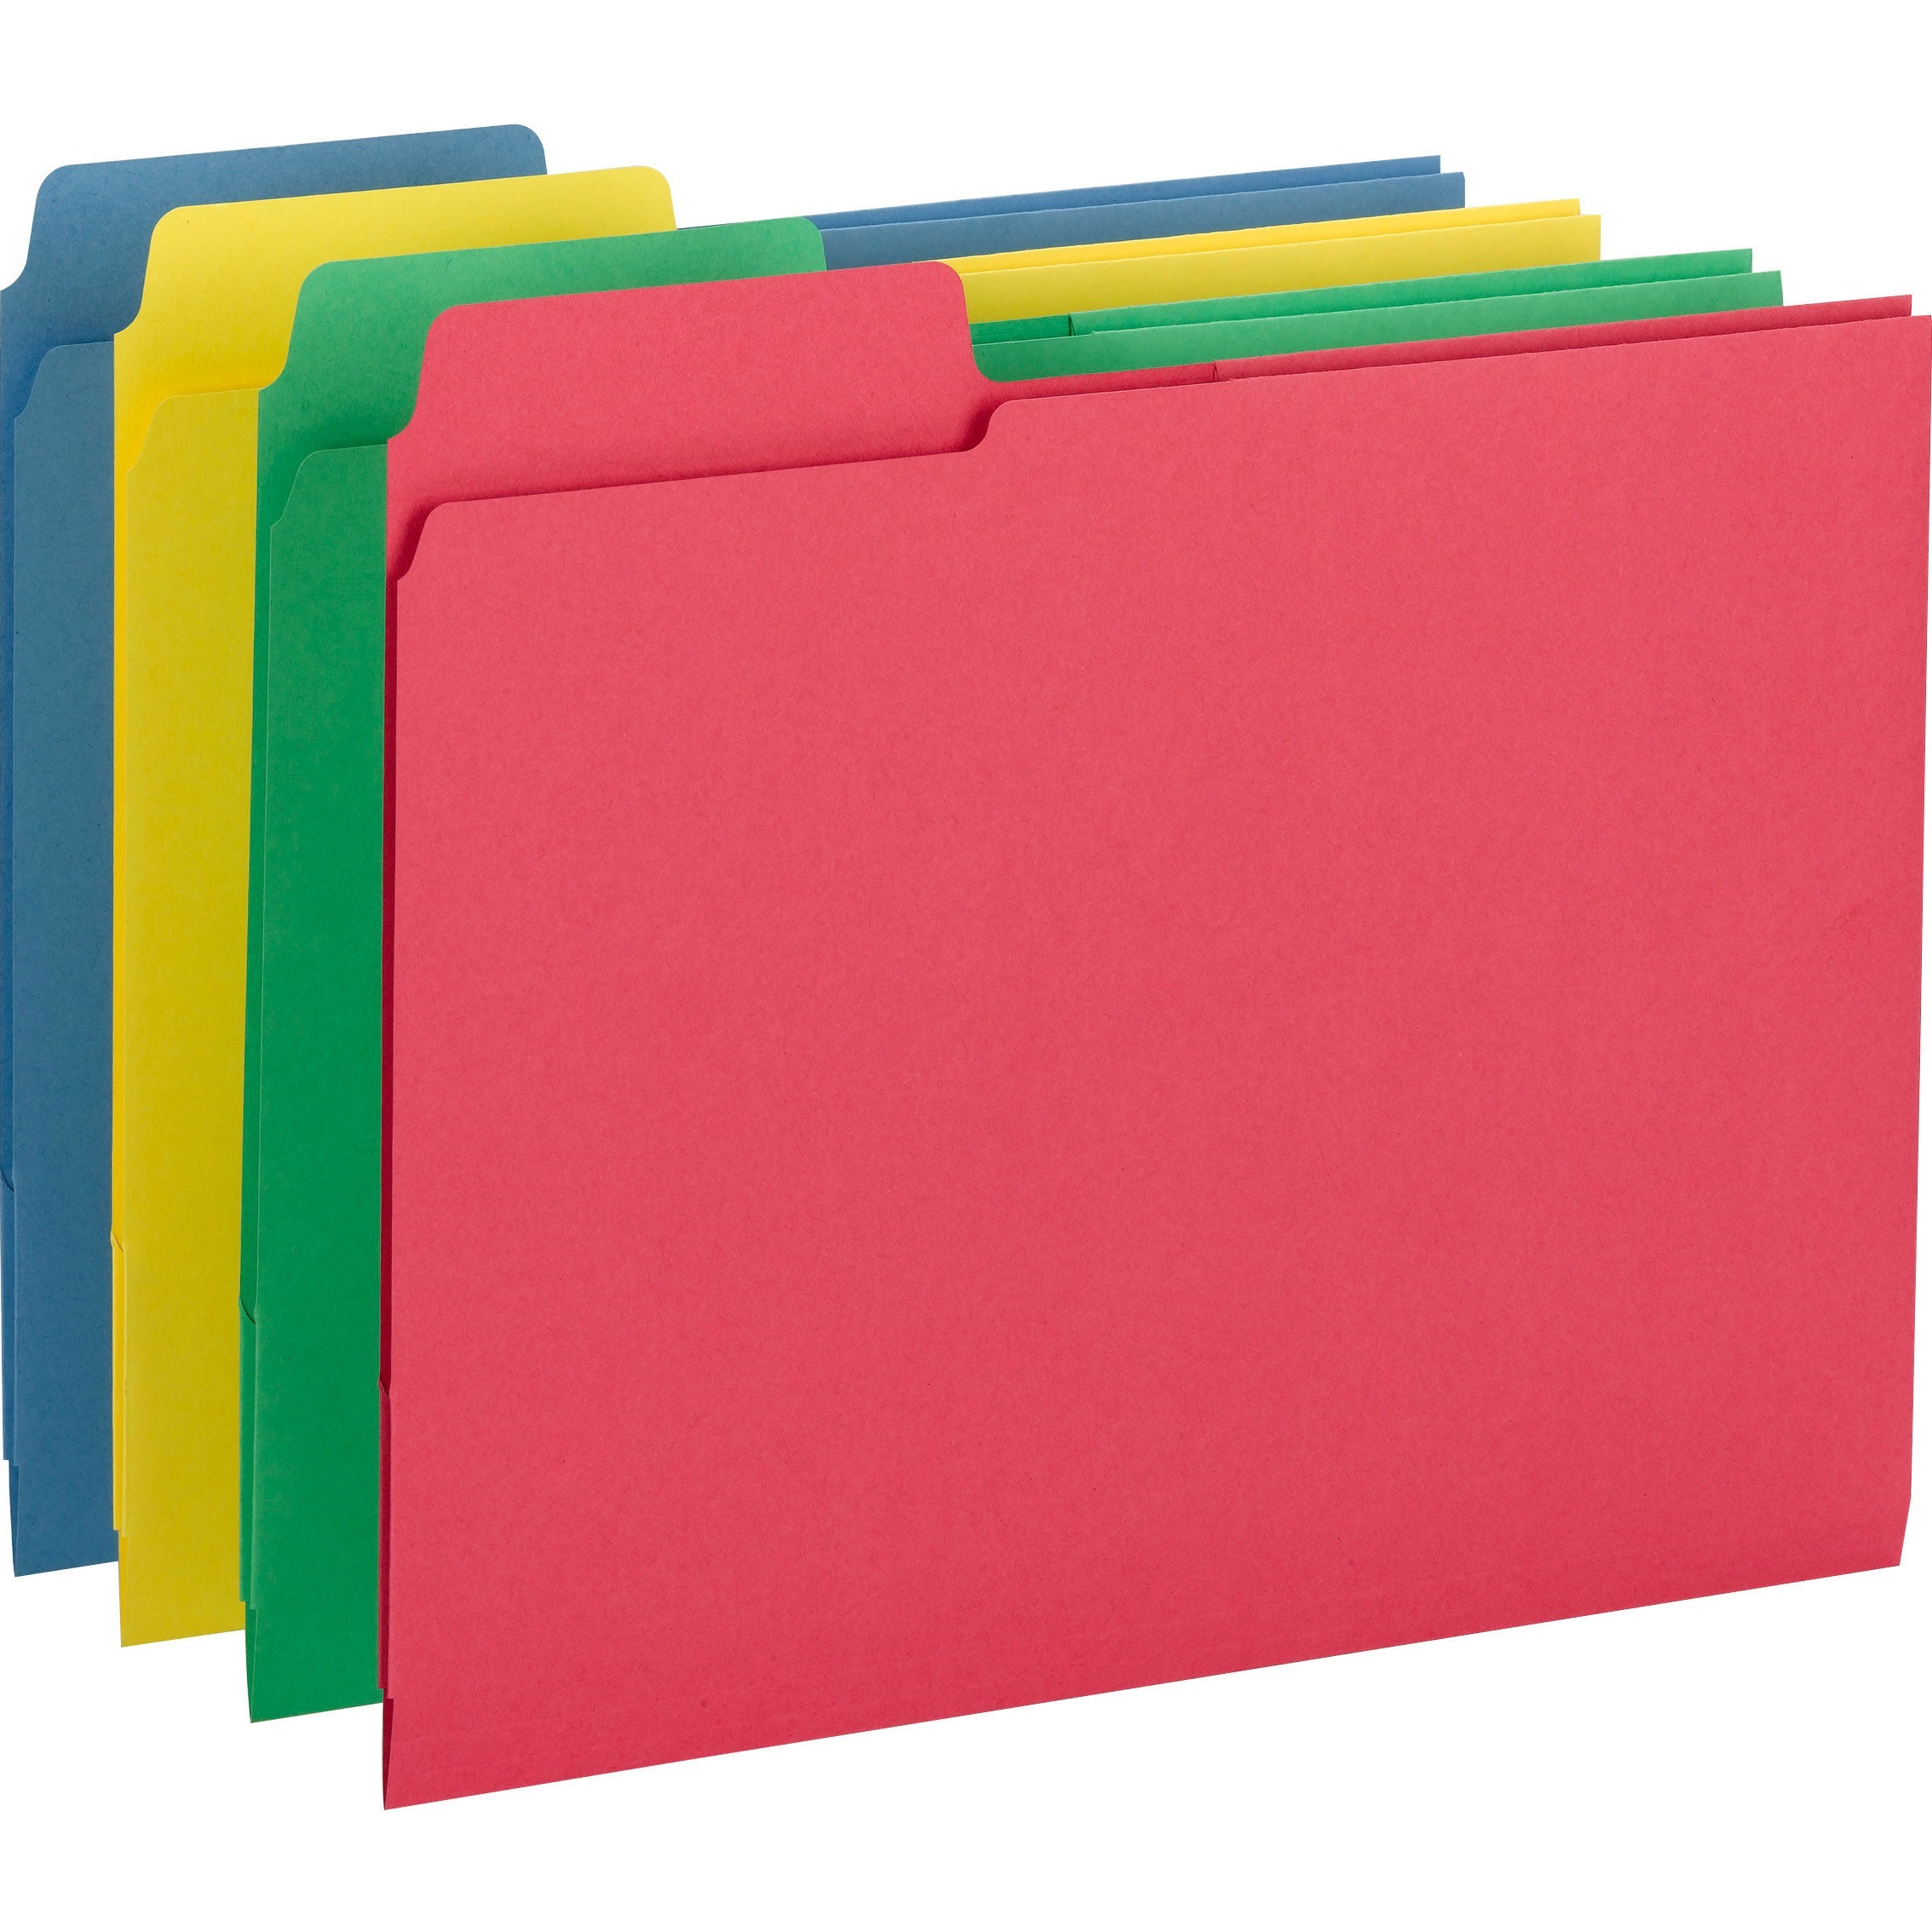 Smead, SMD11905, 3-in-1 Color SuperTab Section Folder, 12 / Pack, Blue,Red,Green,Yellow